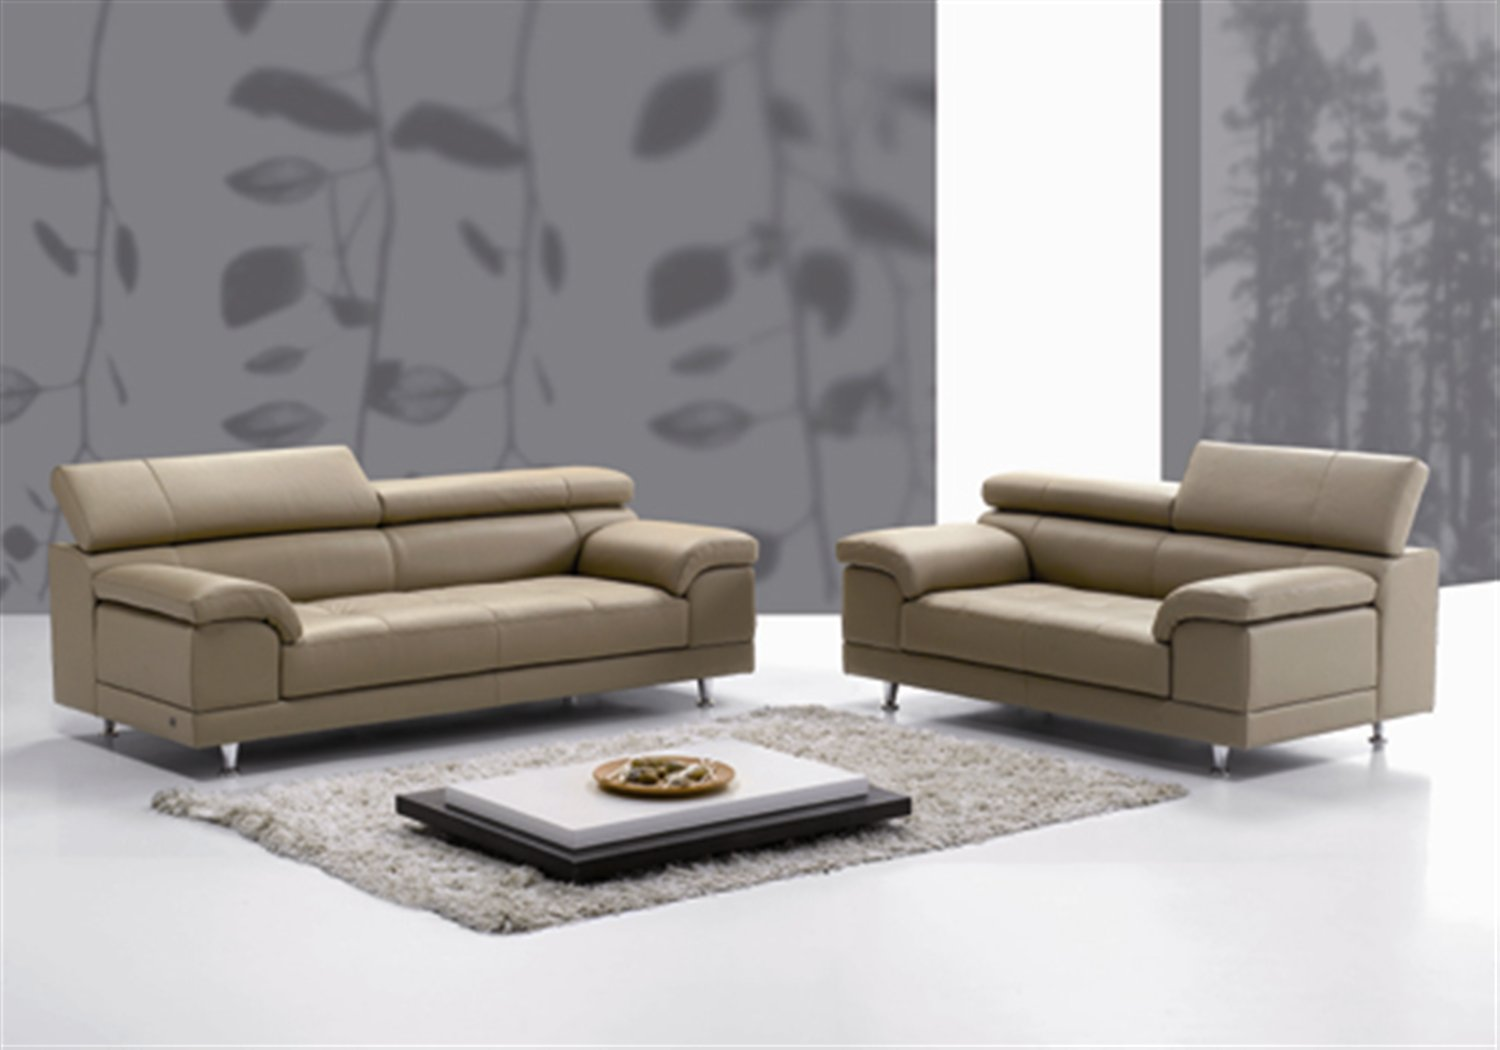 italian sofas simple living. Italian Leather Sofa Sofas Simple Living O